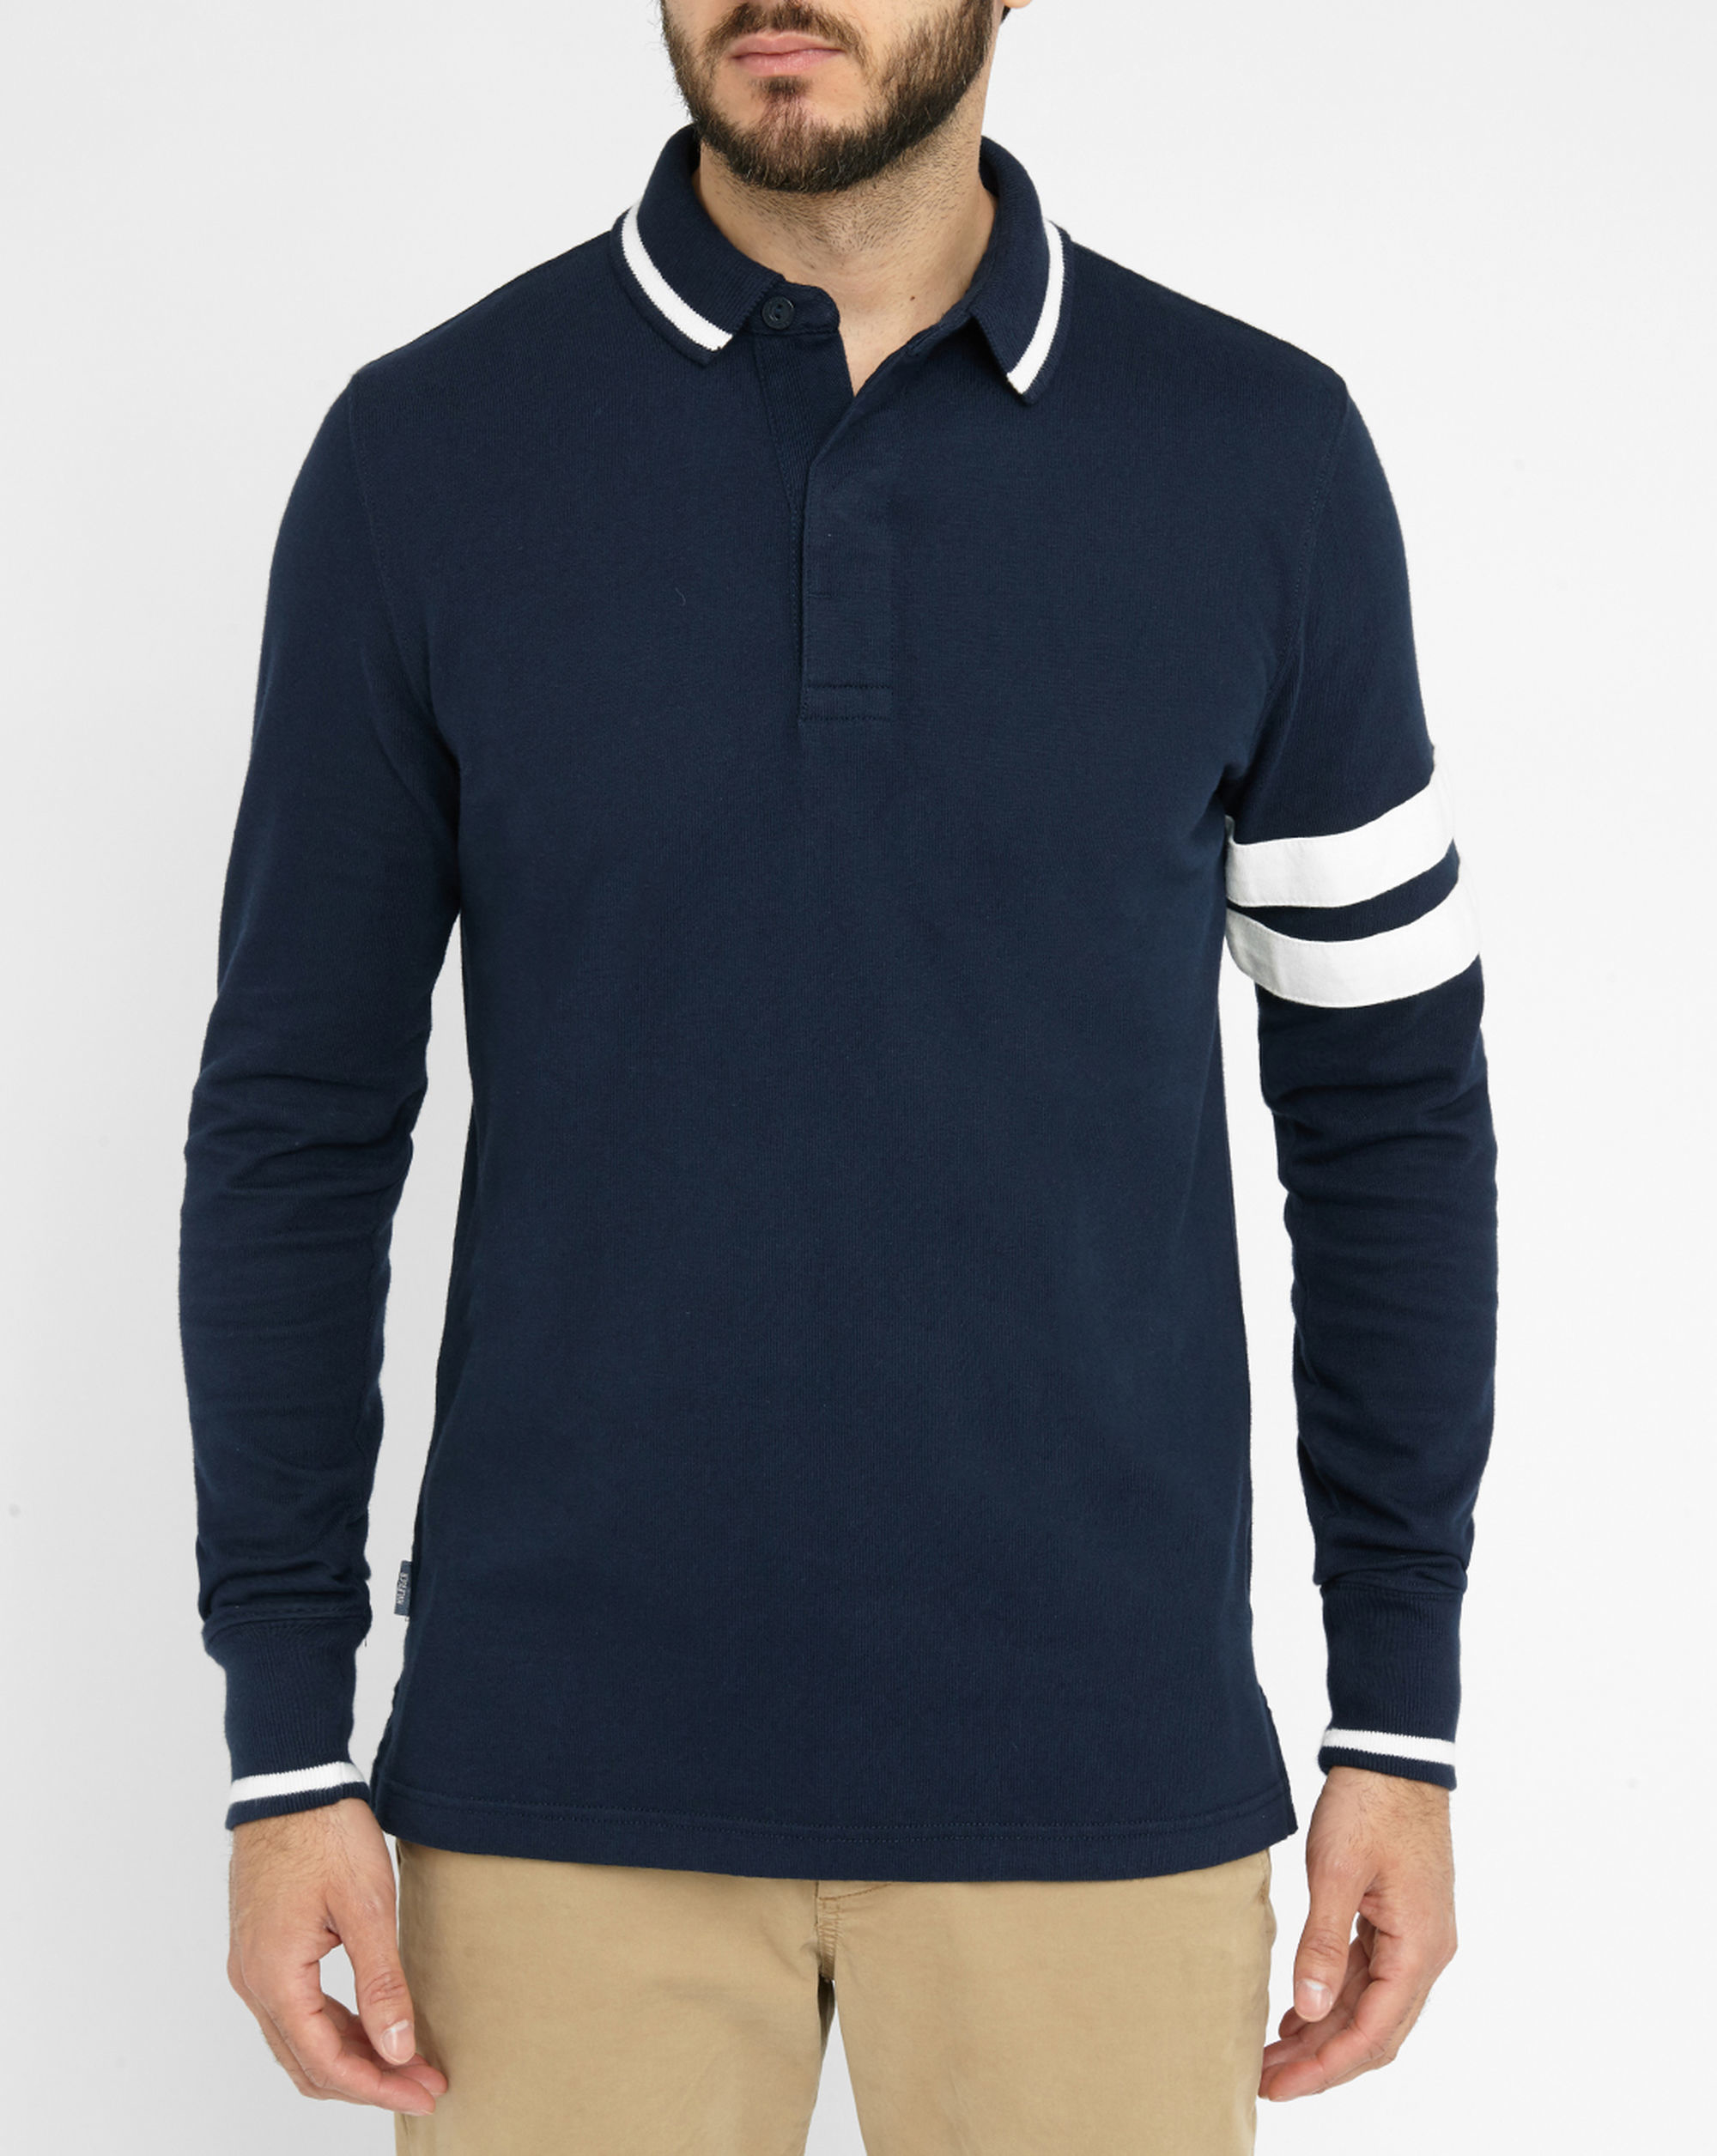 tommy hilfiger navy damen rugby pr polo shirt in blue for men lyst. Black Bedroom Furniture Sets. Home Design Ideas